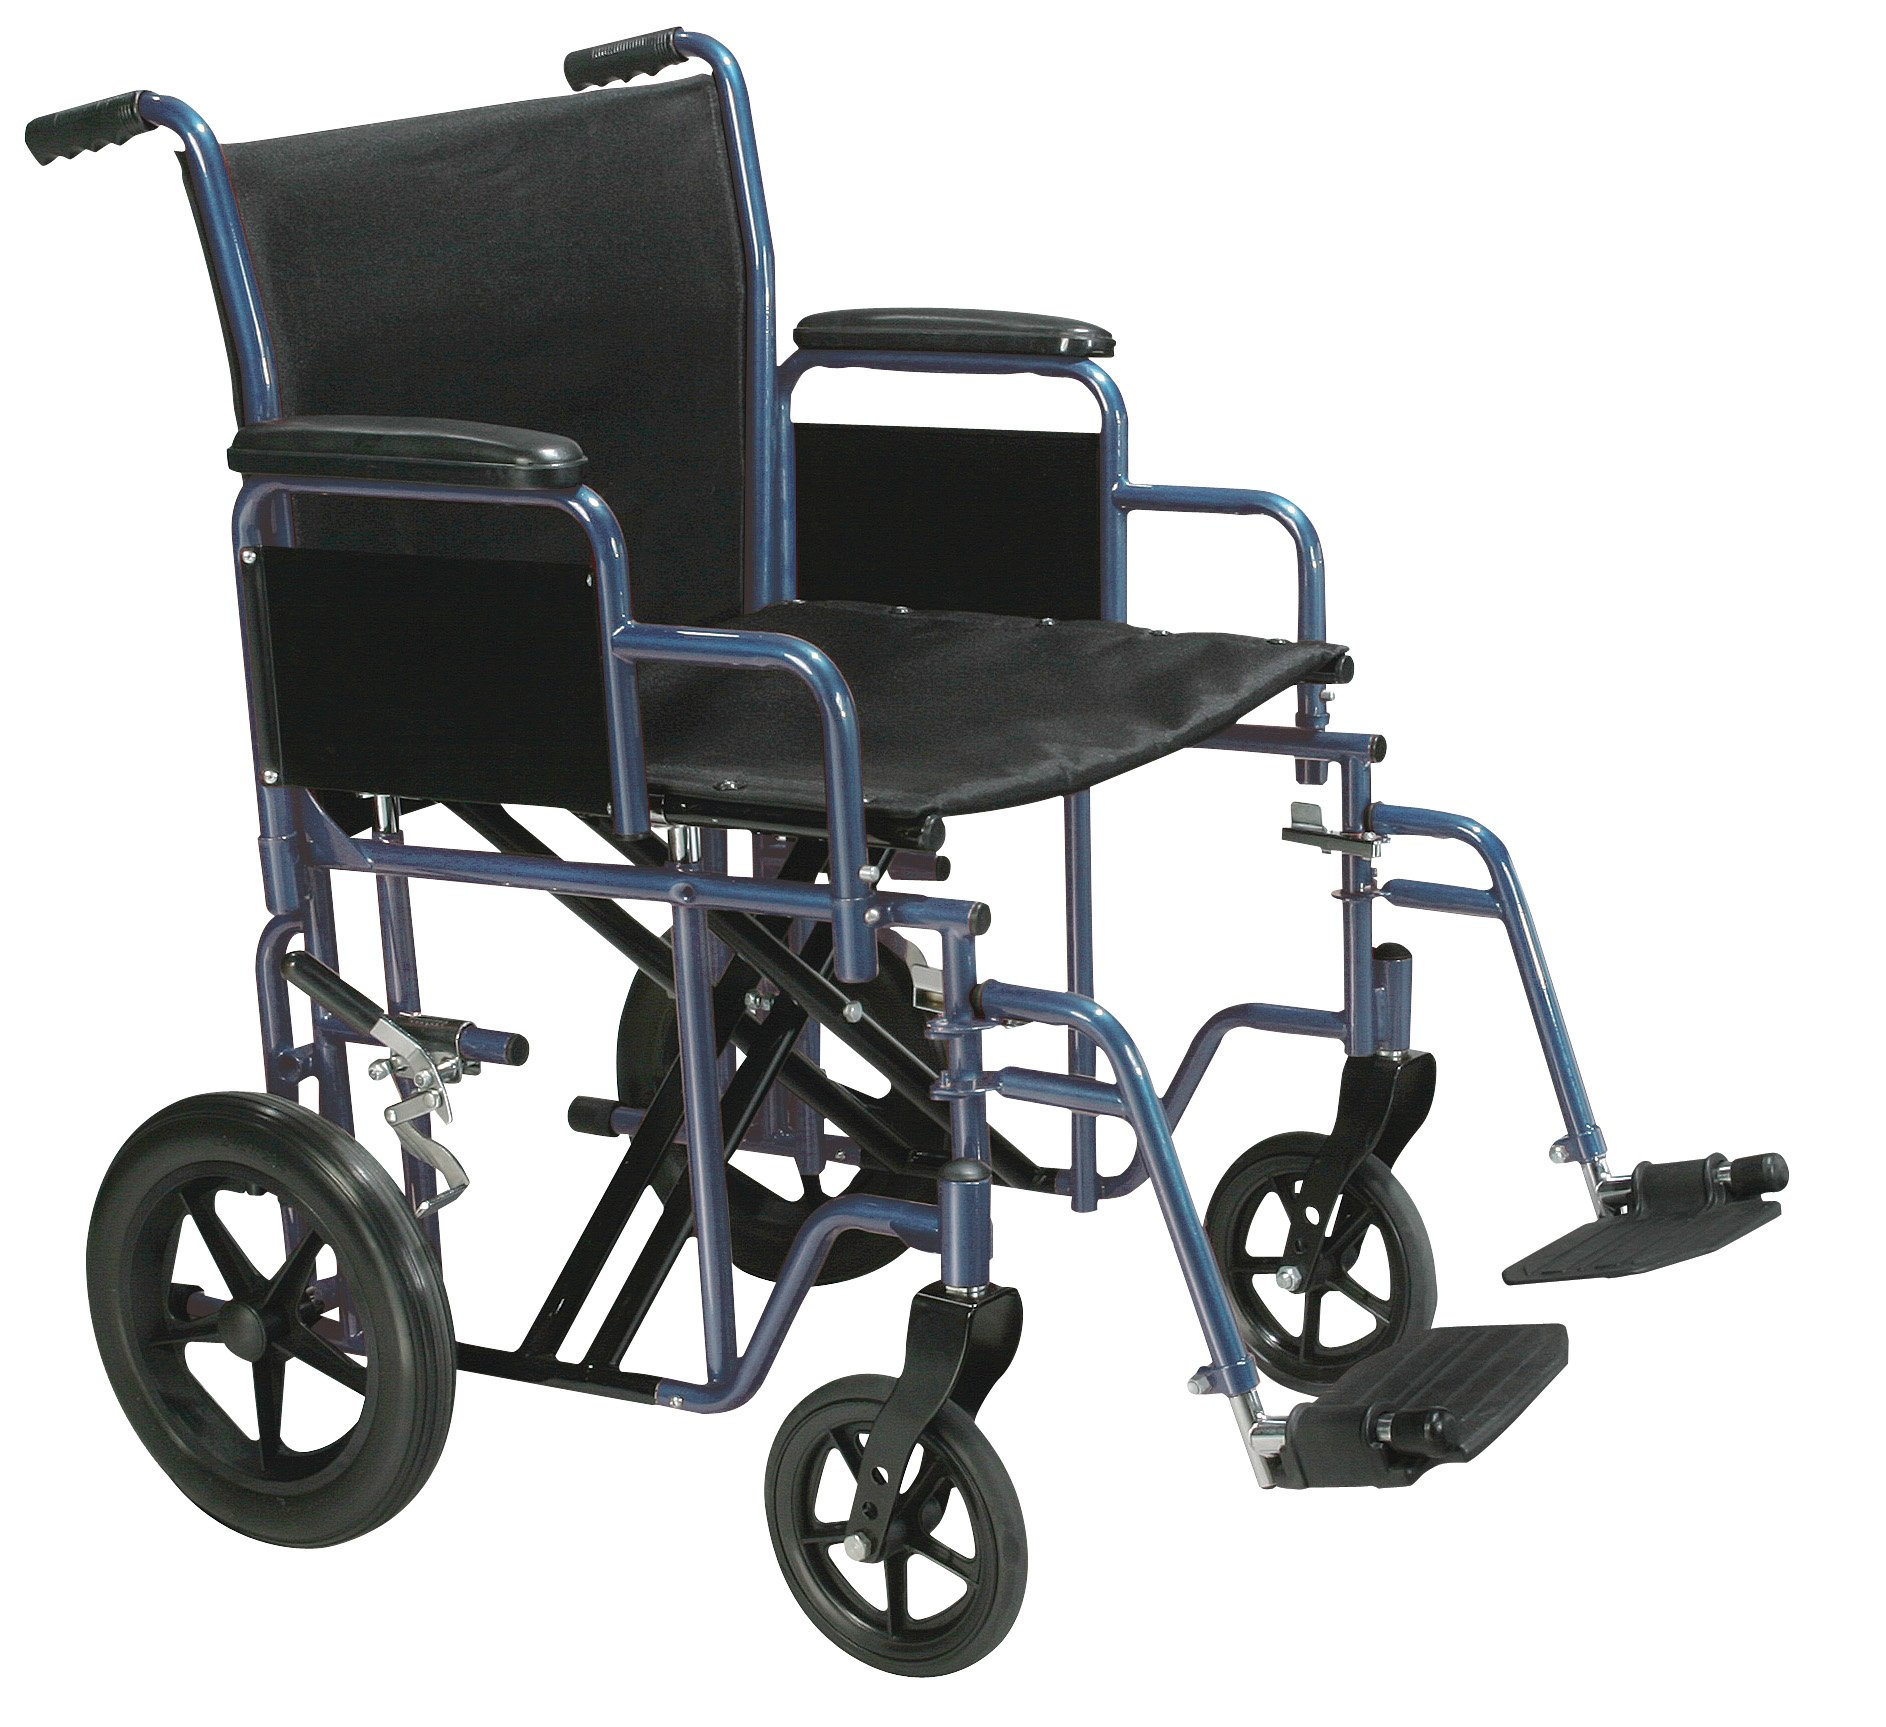 Drive Medical Bariatric Heavy Duty Transport Wheelchair with Swing-away Footrest, Blue, 22''